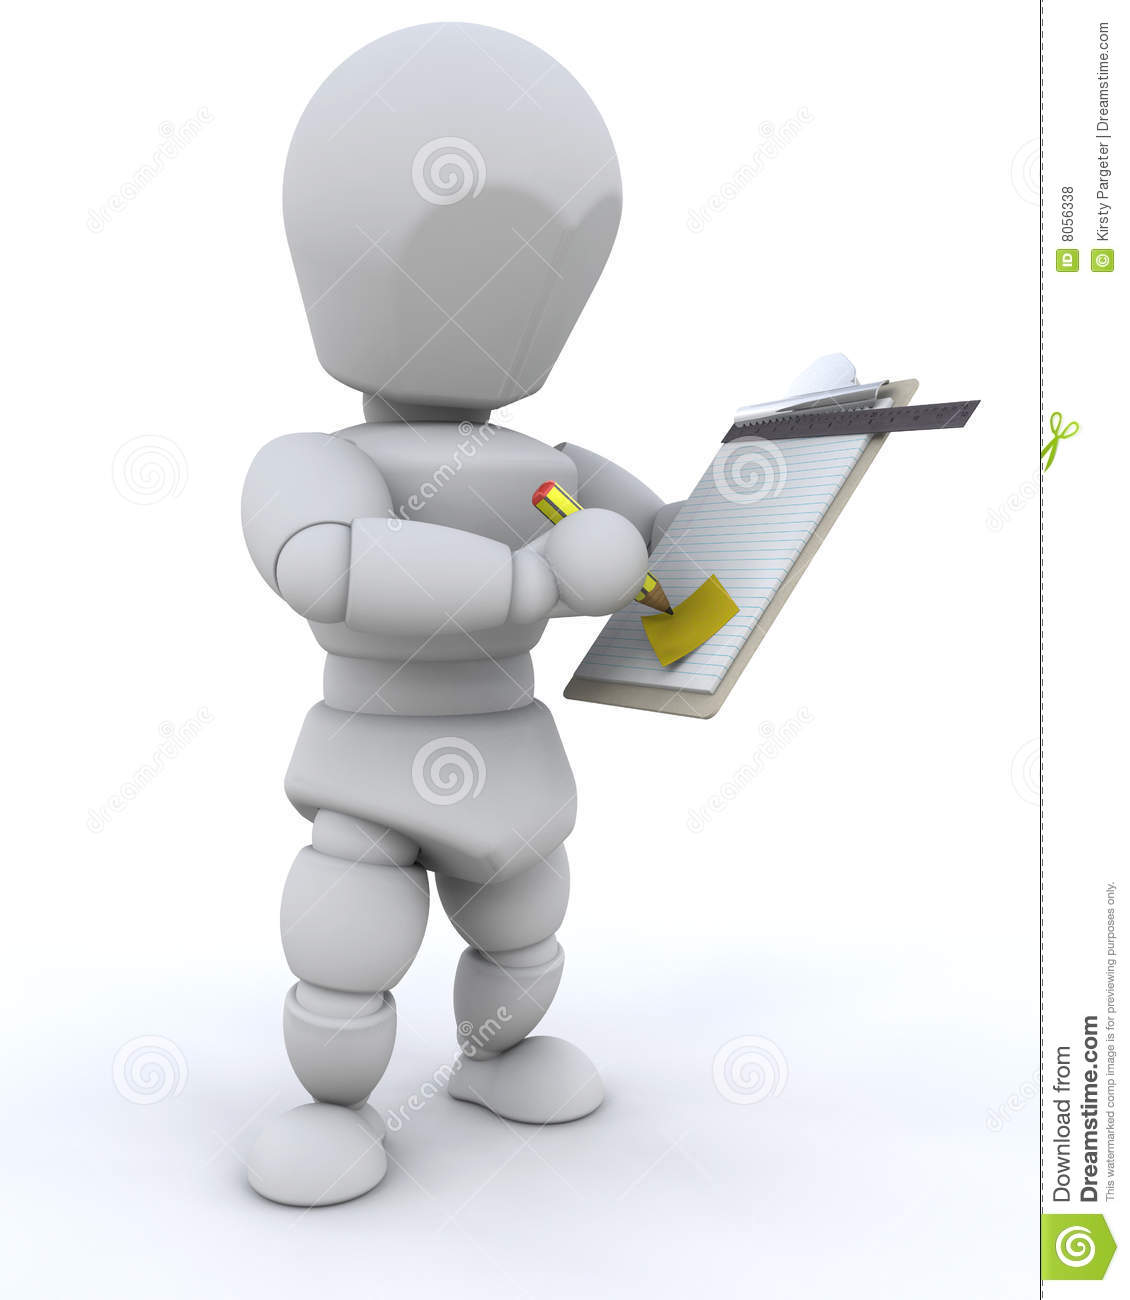 Checking Clipboard Royalty Free Stock Photos - Image: 8056338